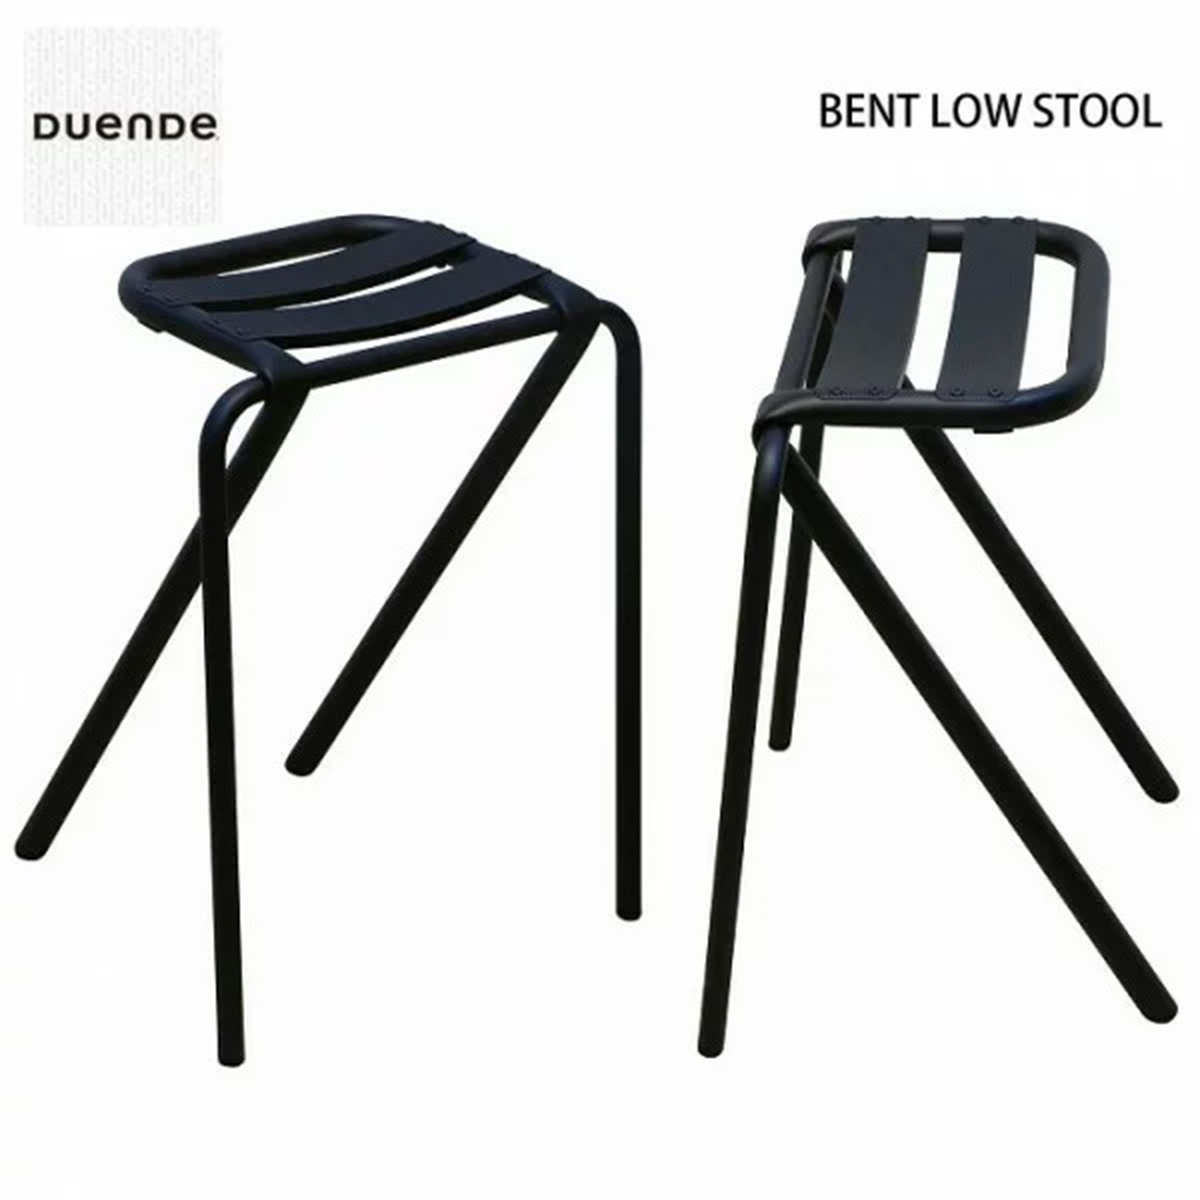 DUENDE BENT LOW STOOL